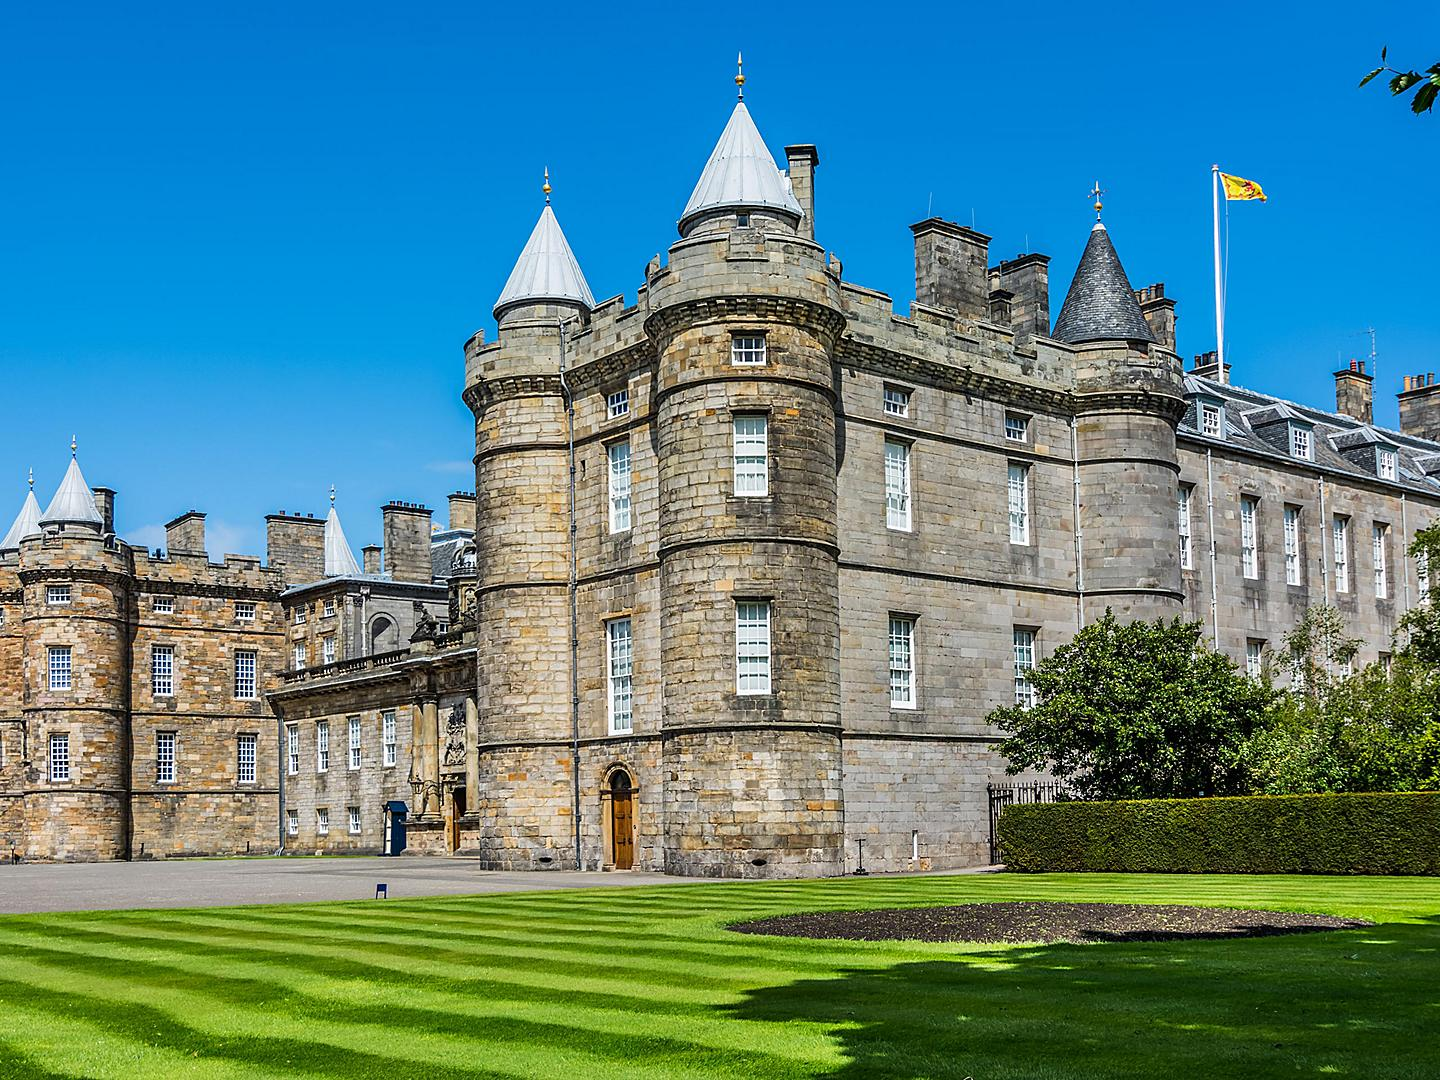 Edinburgh (S. Queensferry), Scotland, Holyrood Palace